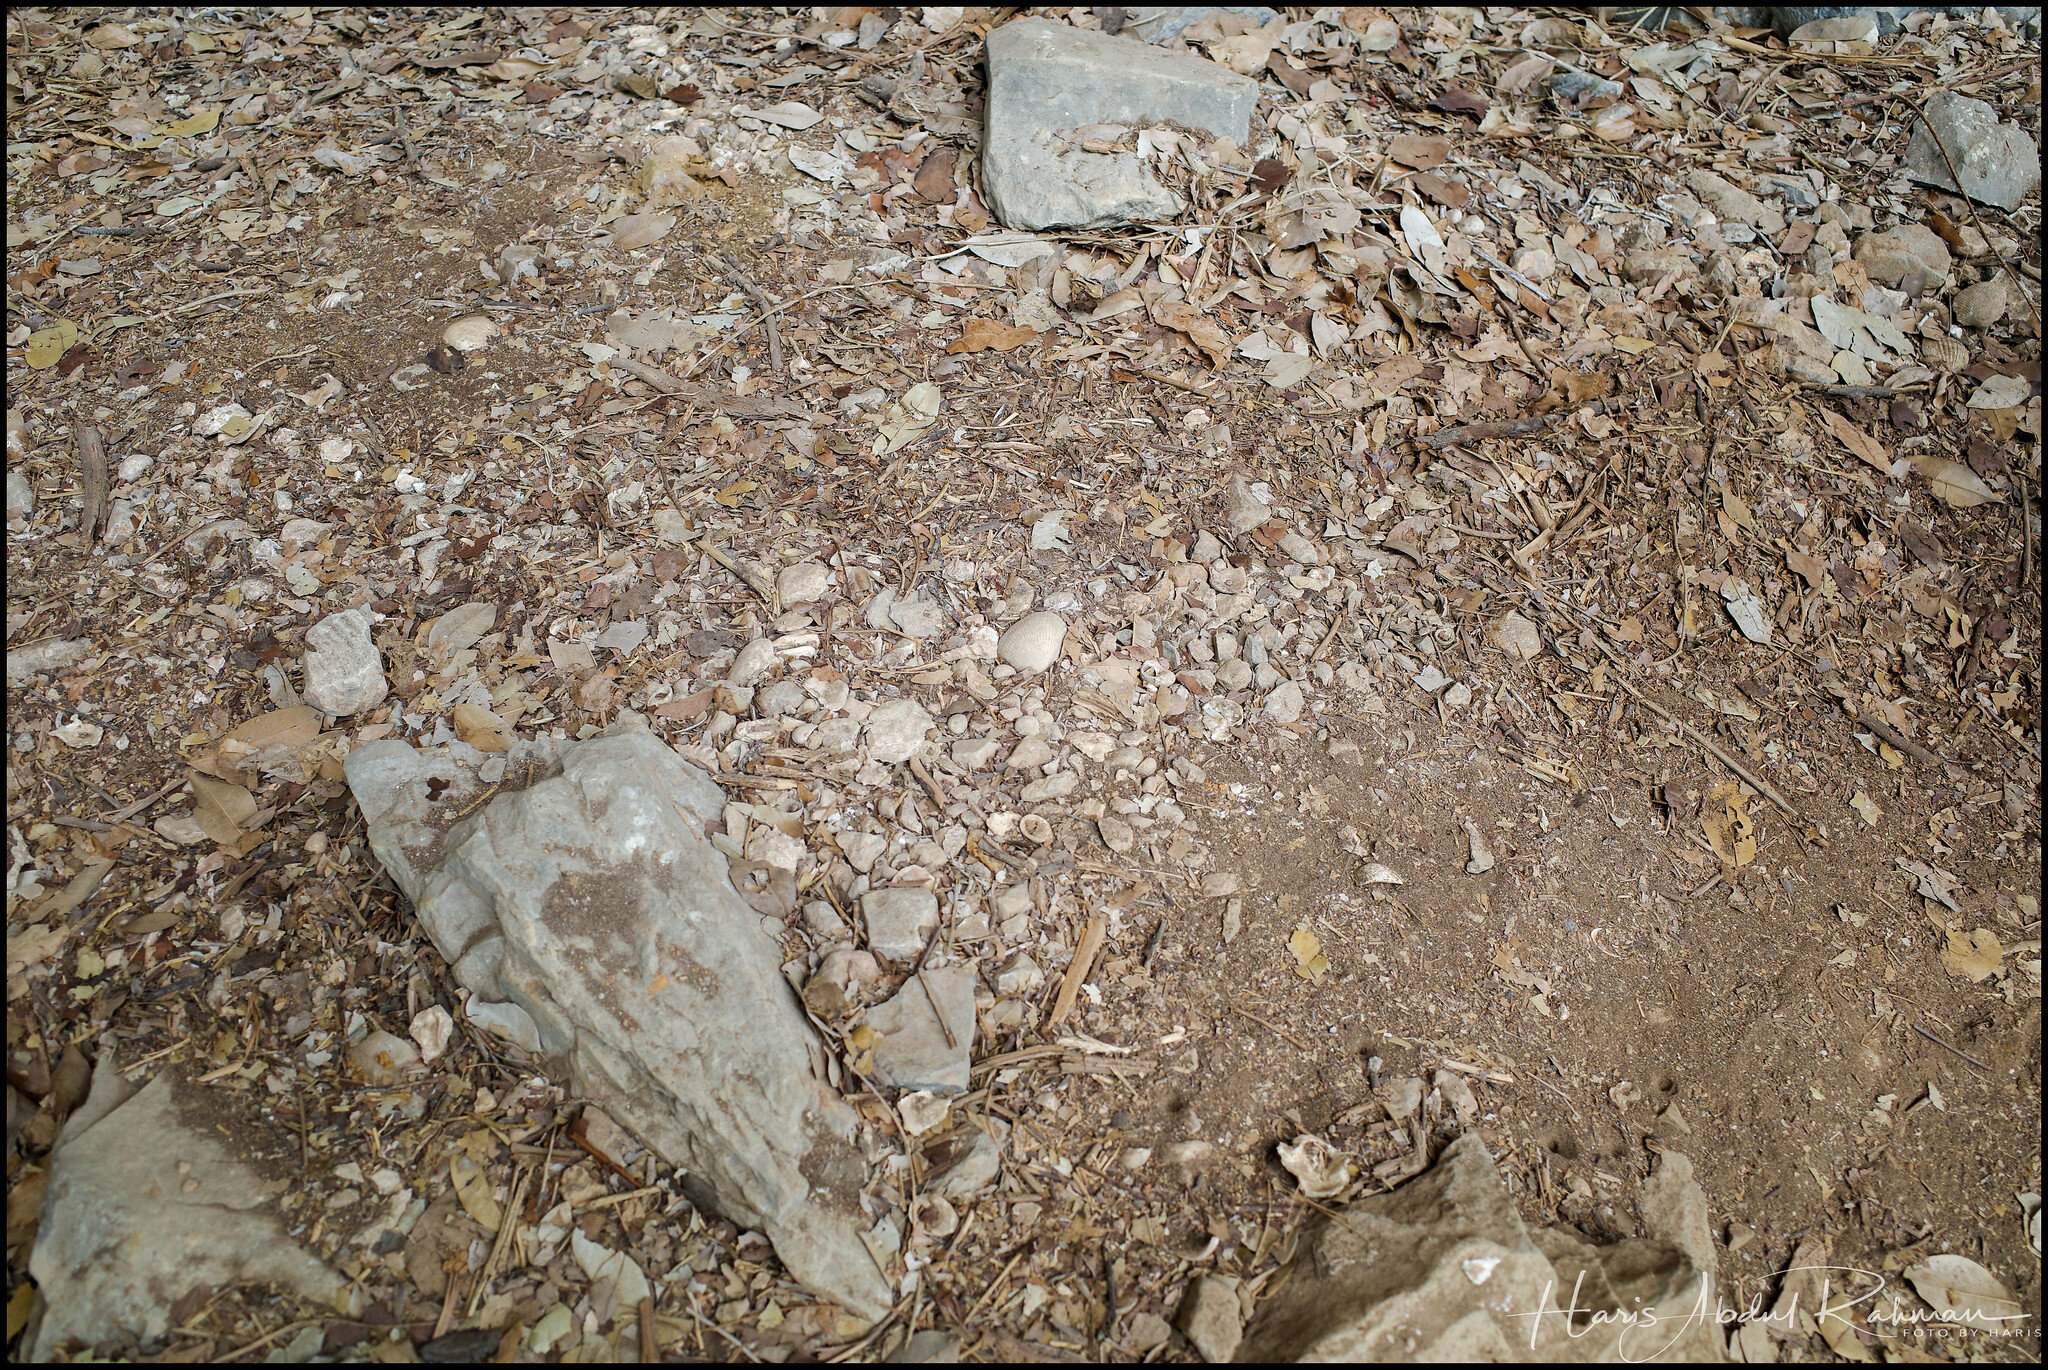 The floor was strewn with shells. It used to a beach here …